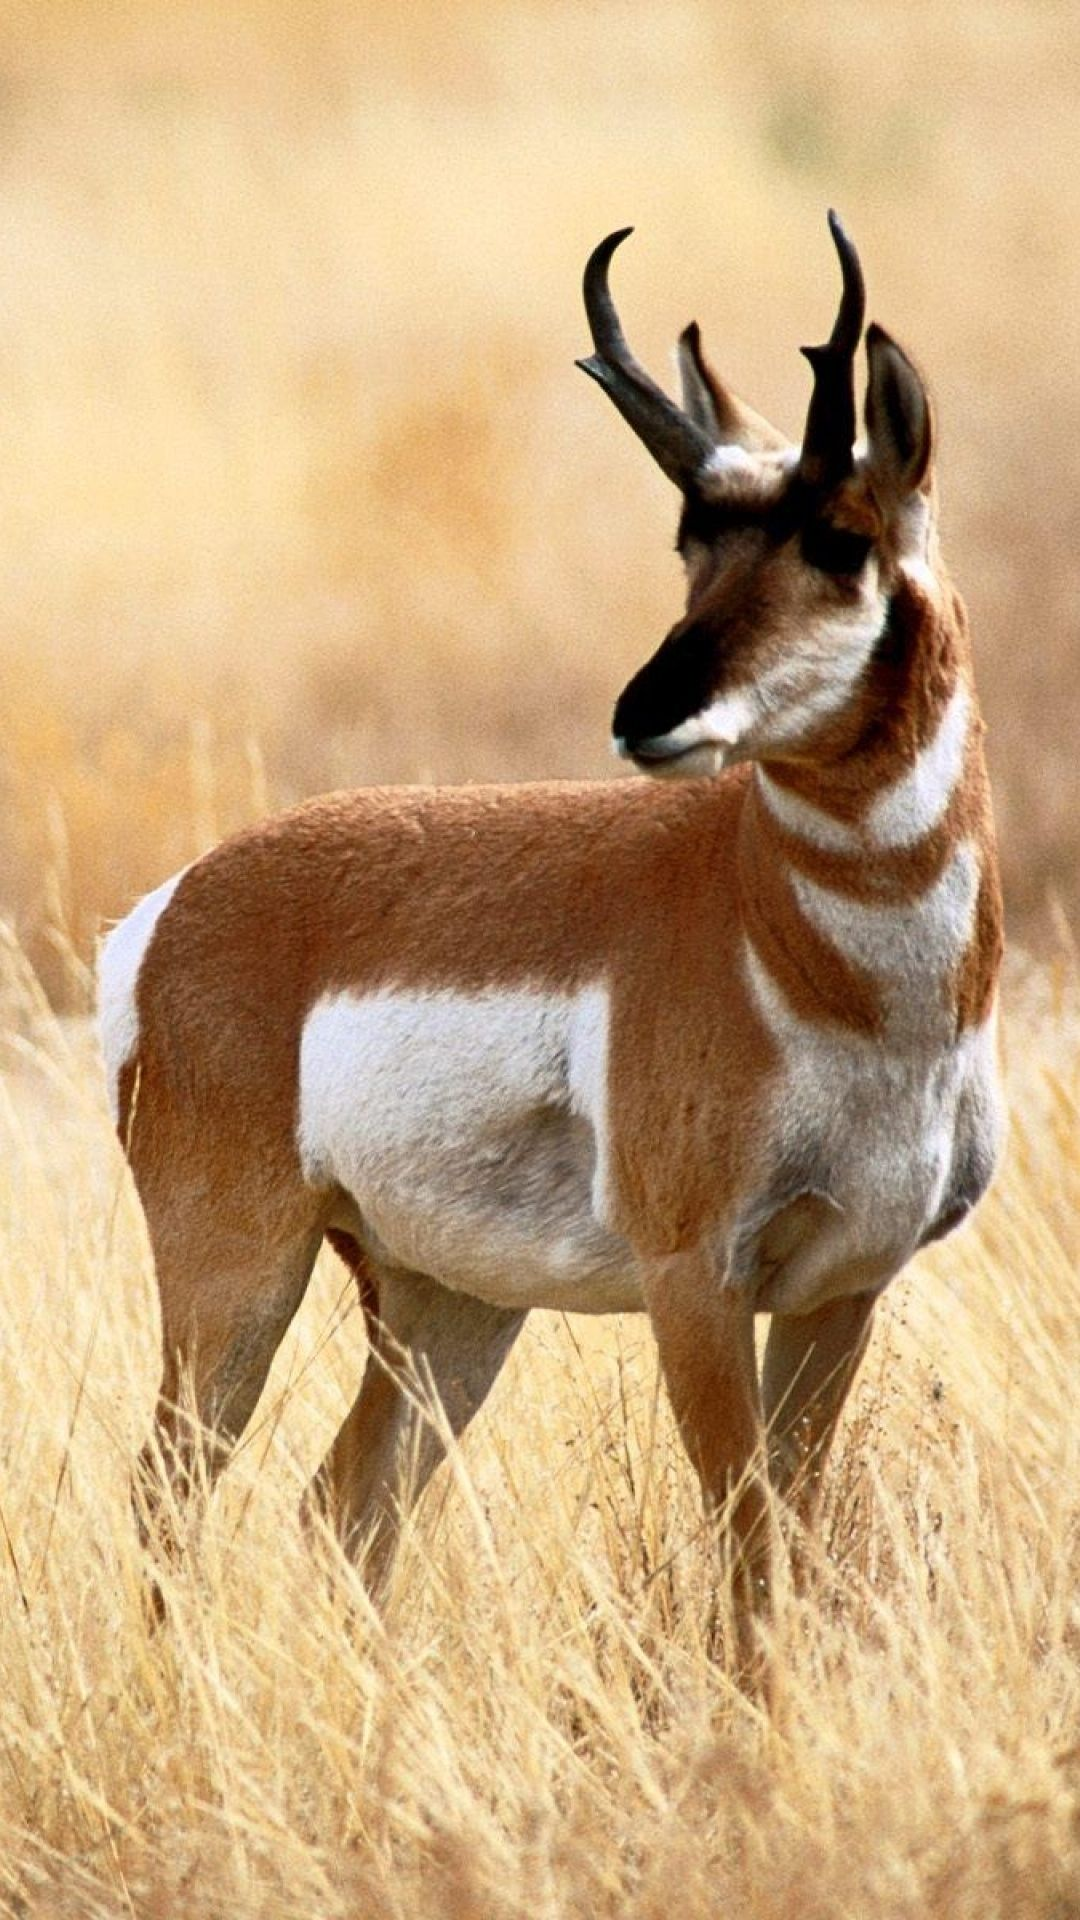 1080x1920 Animal/Antelope (1080x1920) Wallpaper ID: 693932 - Mobile Abyss